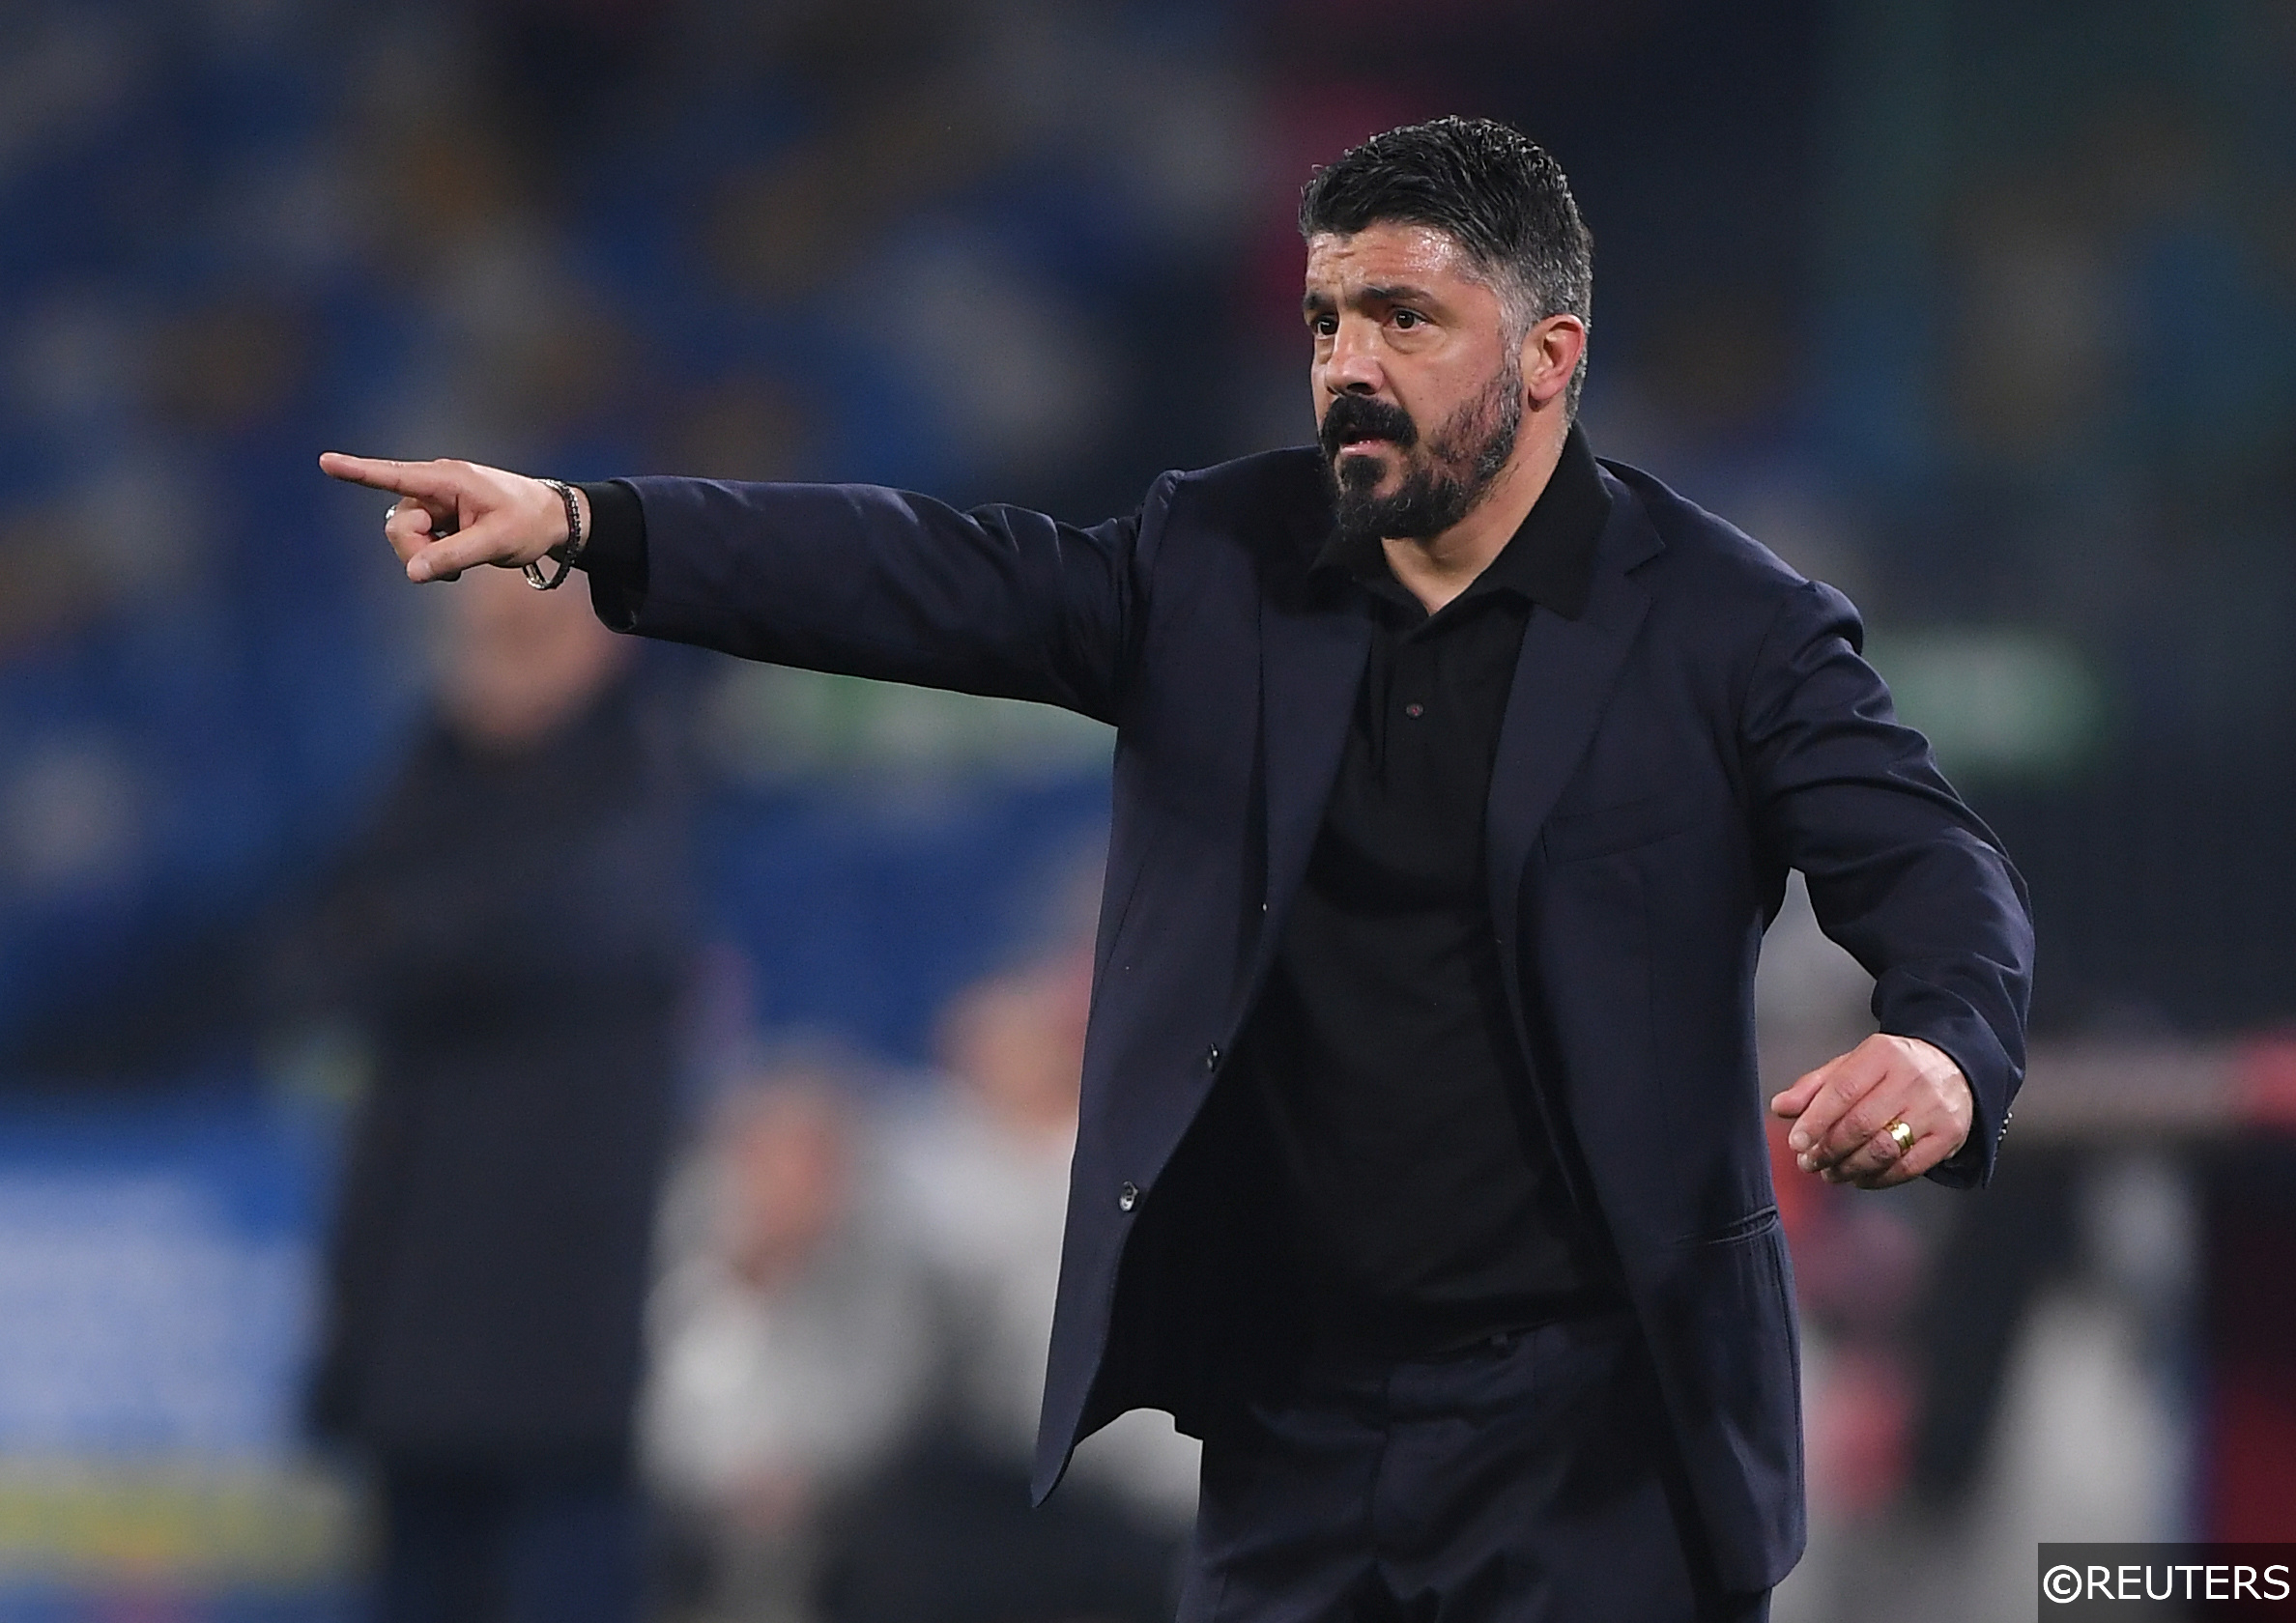 Napoli manager Gattuso in Serie A